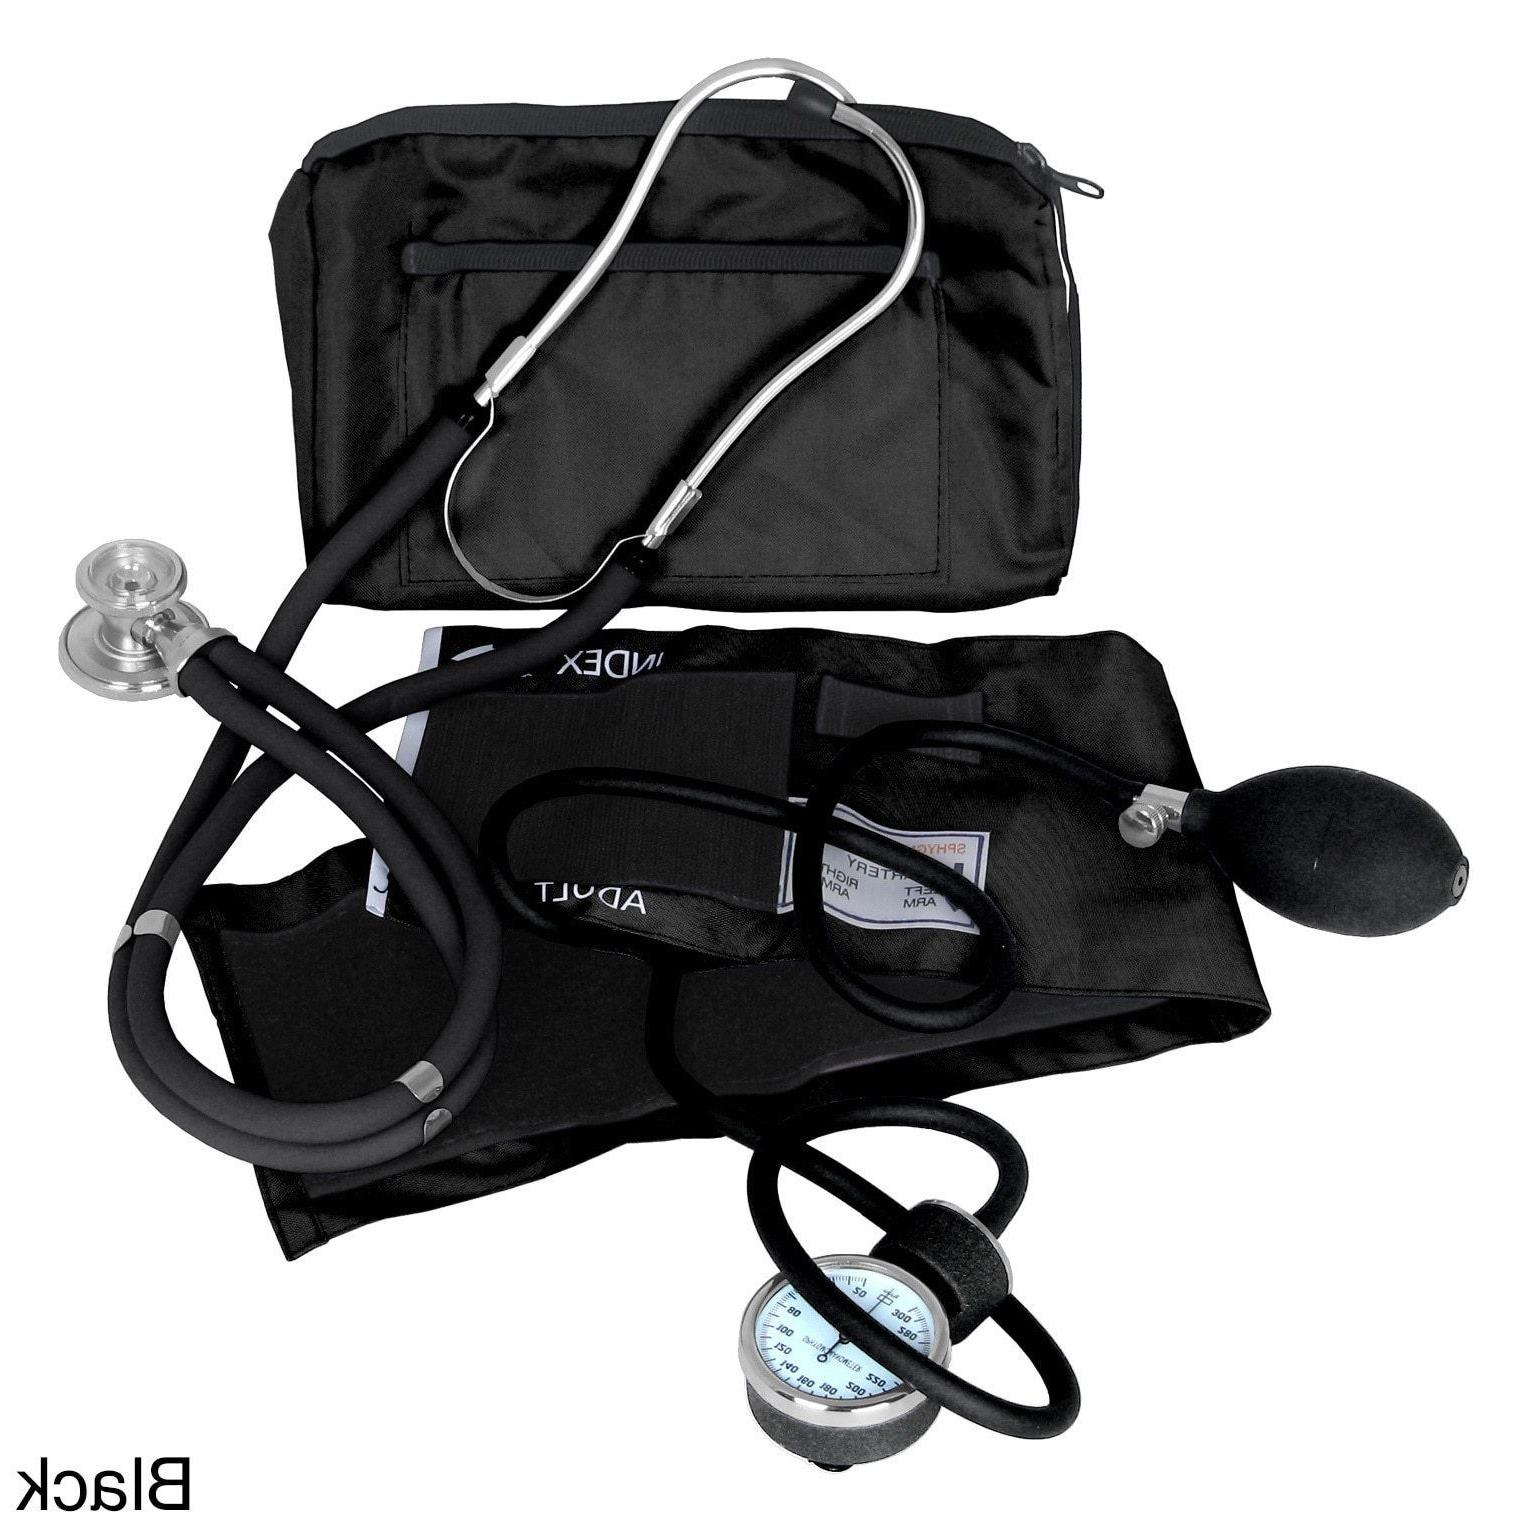 sprague rappaport stethoscope and manual blood pressure